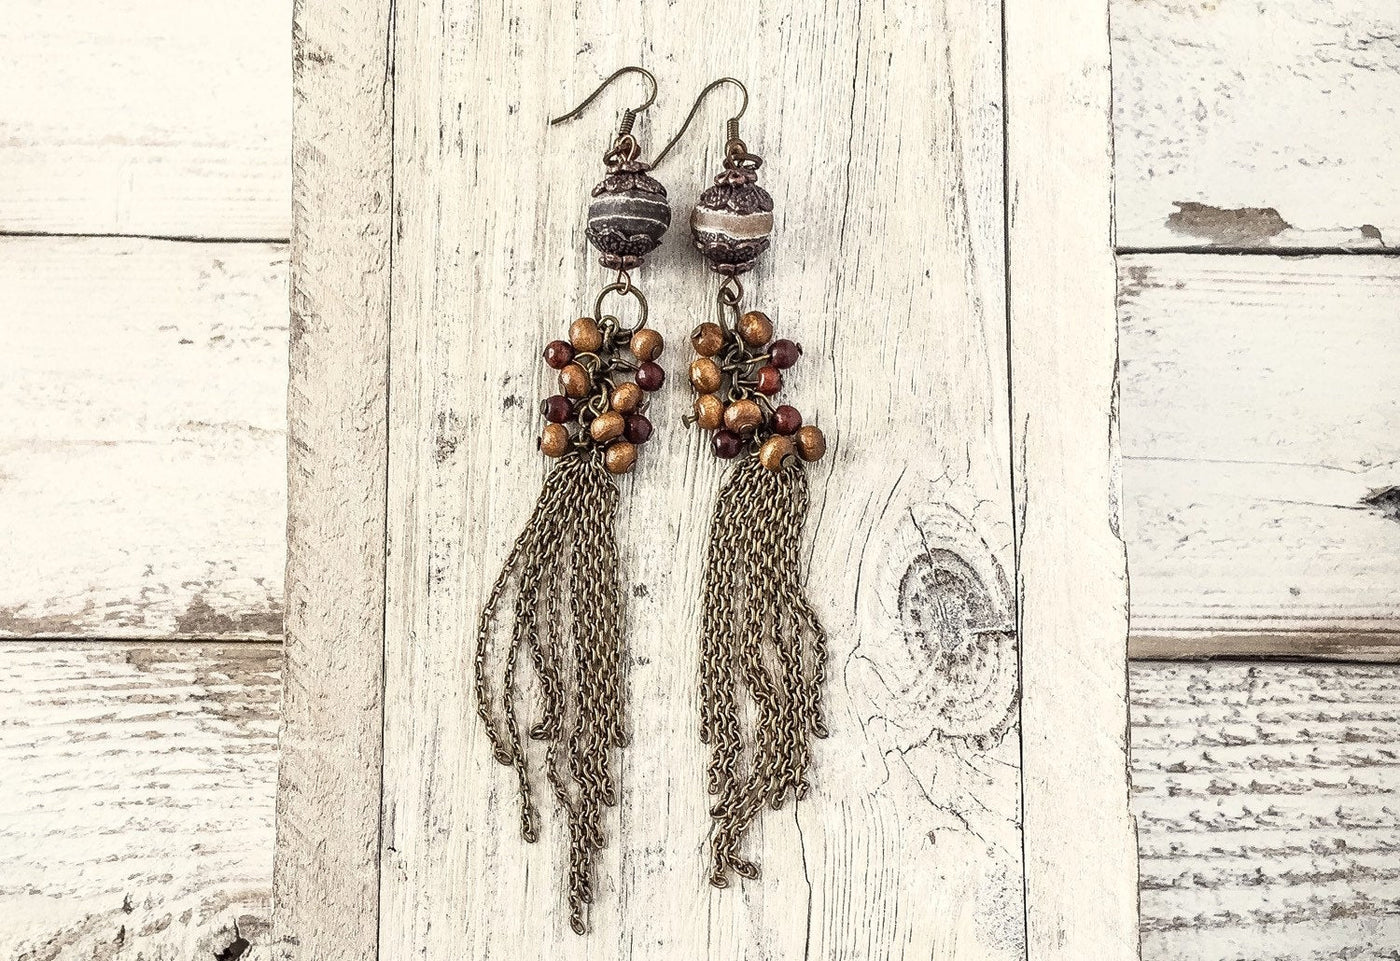 Agate Chain Tassel Earrings, Gypsy Long Earrings, Gypsy Tassel Earrings, Bohemian Agate Earrings, Hippie Earrings, Boho Earrings, E043